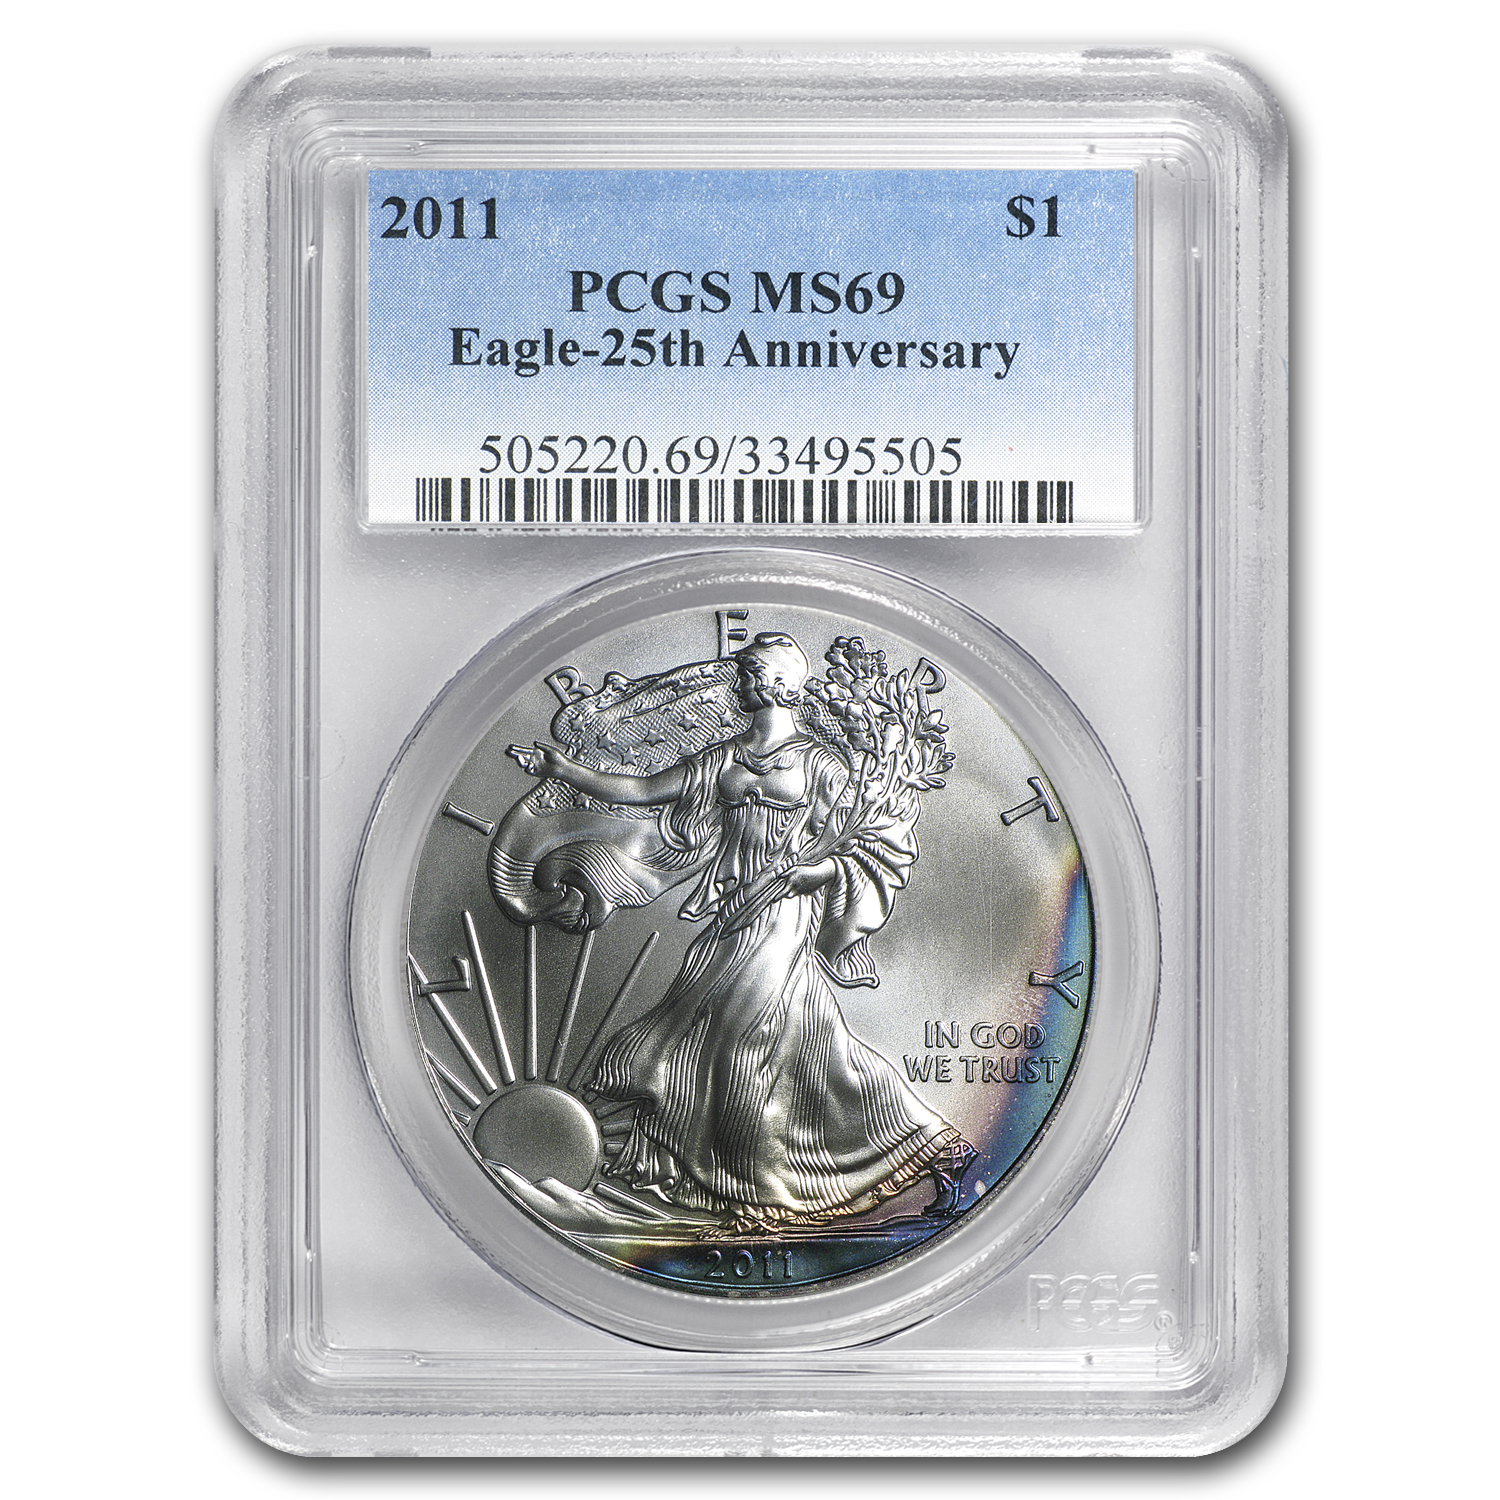 2011 Silver American Eagle MS-69 PCGS (Toning)